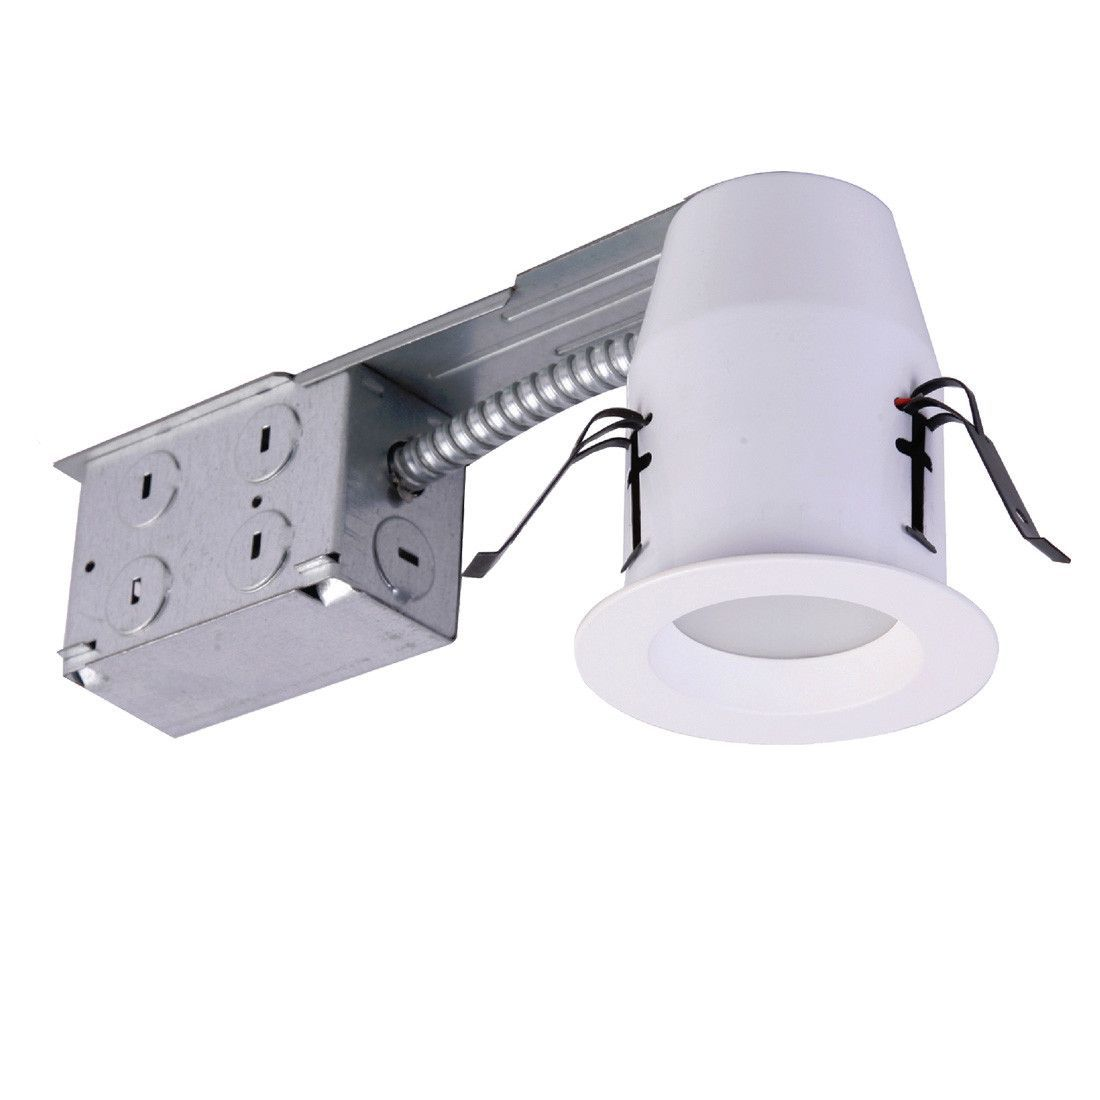 3 inch e pro white led recessed down light w remodel housing 3 inch e pro white led recessed down light w remodel housing aloadofball Choice Image